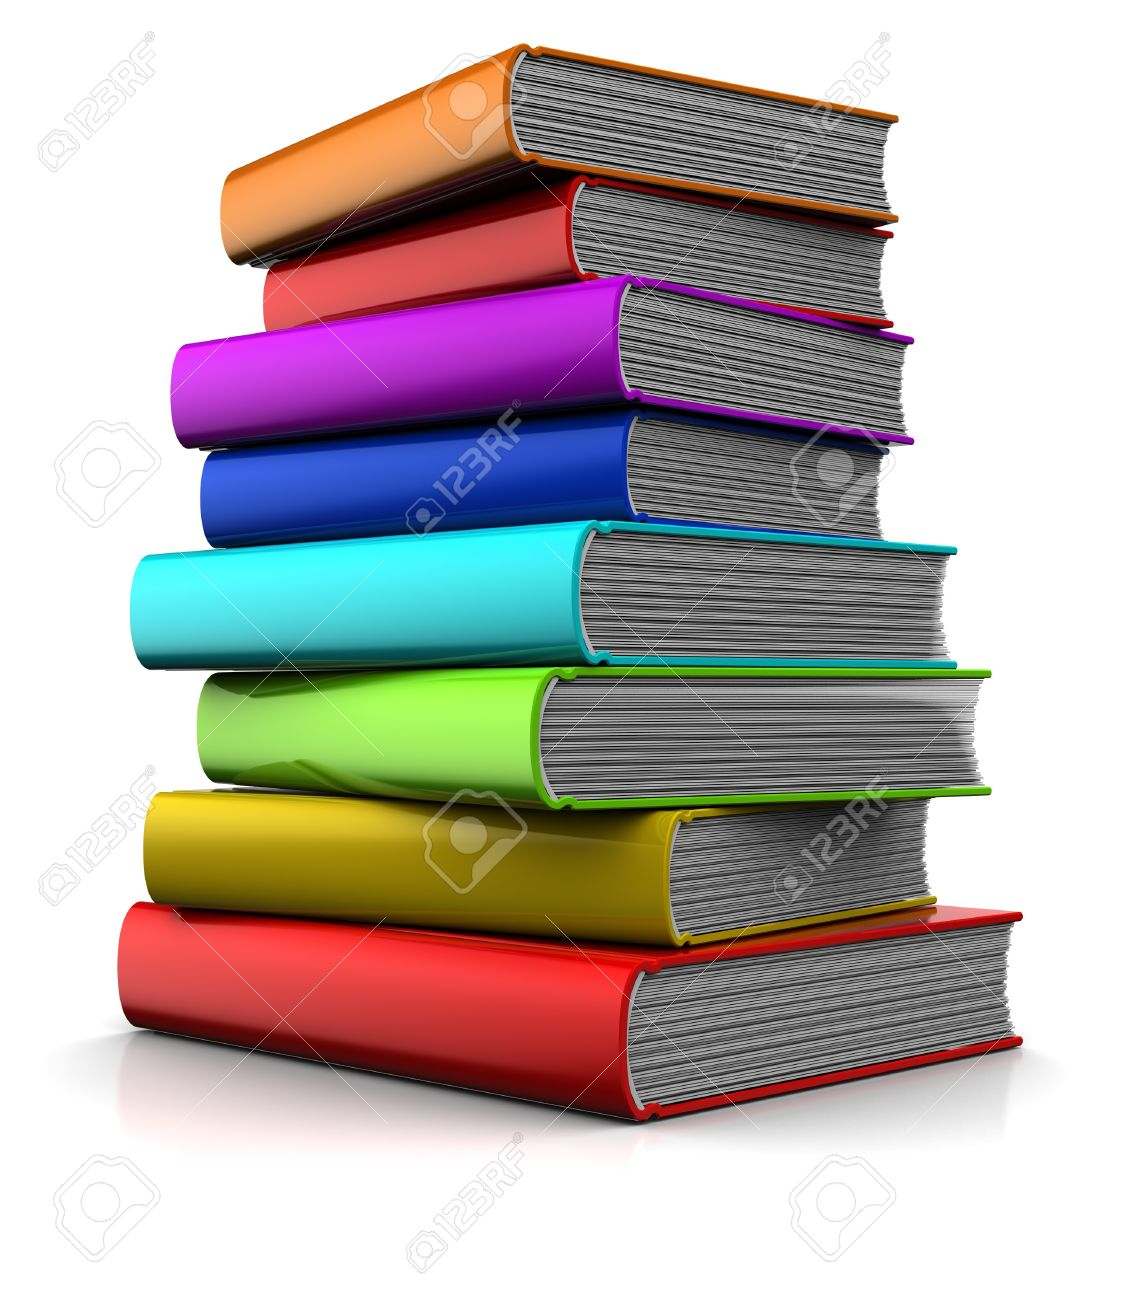 3d Illustration Of Colorful Books Stock Photo, Picture And Royalty ...